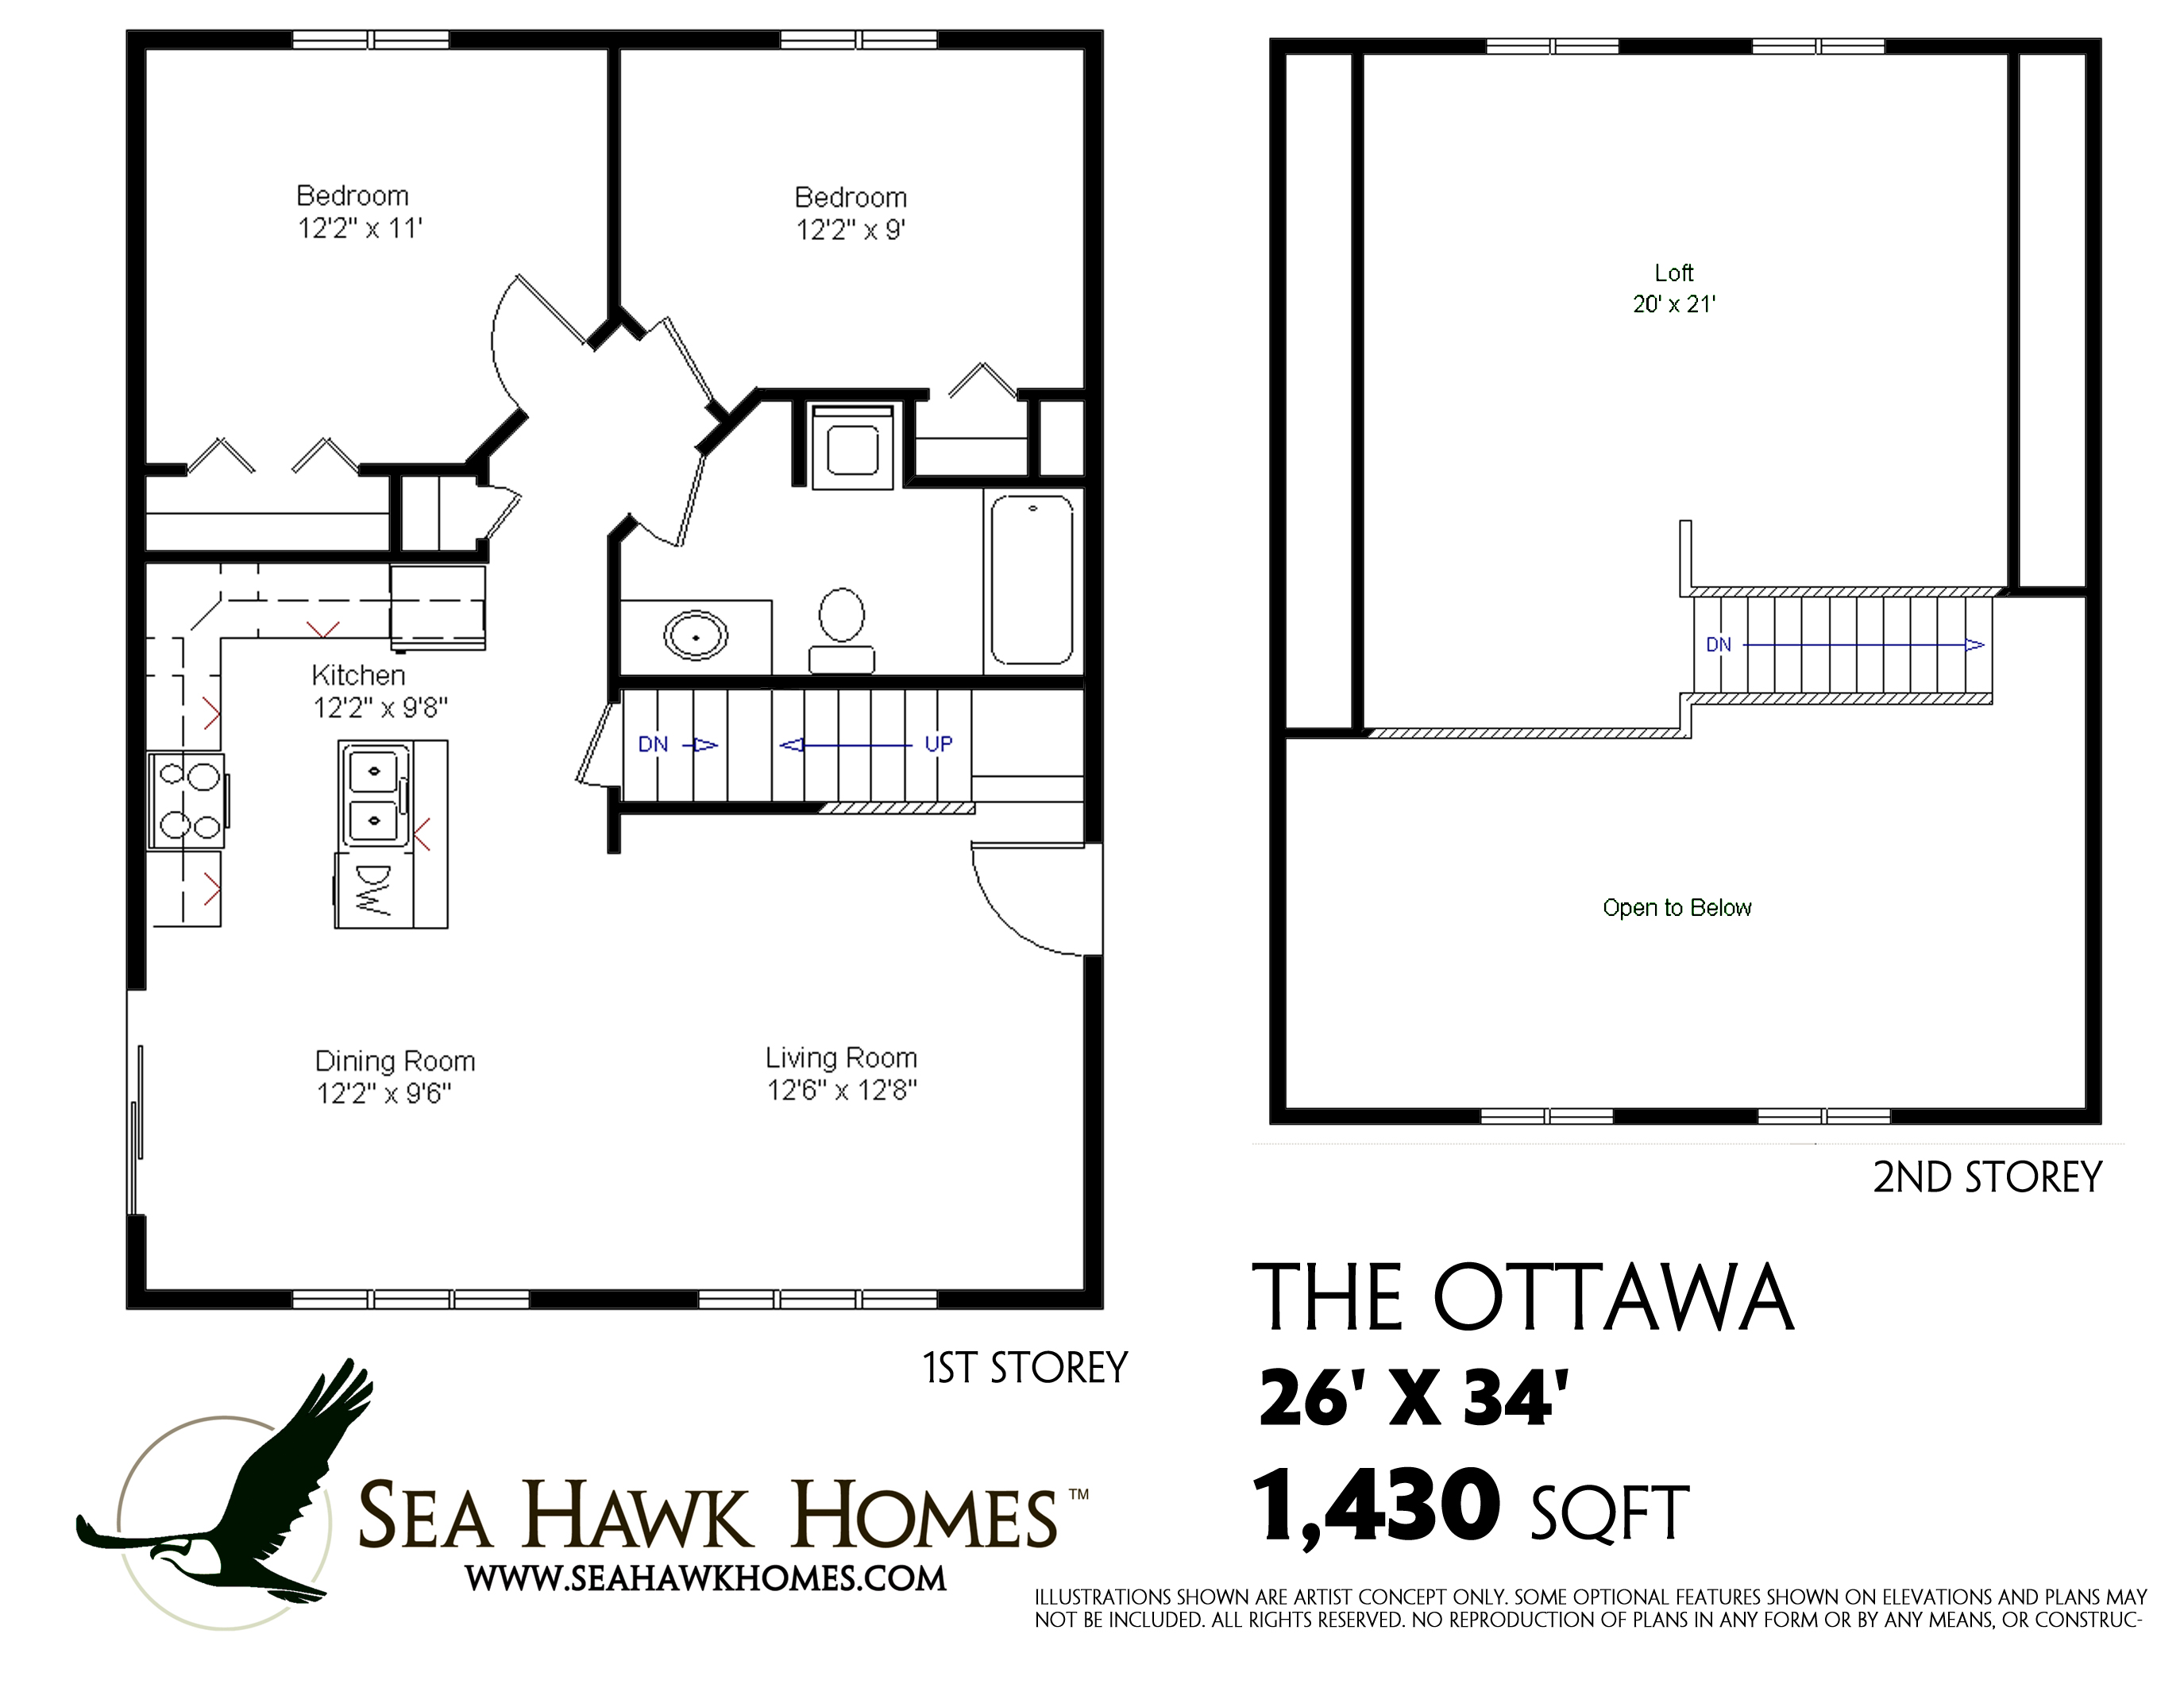 Ottawa Sea Hawk Homes